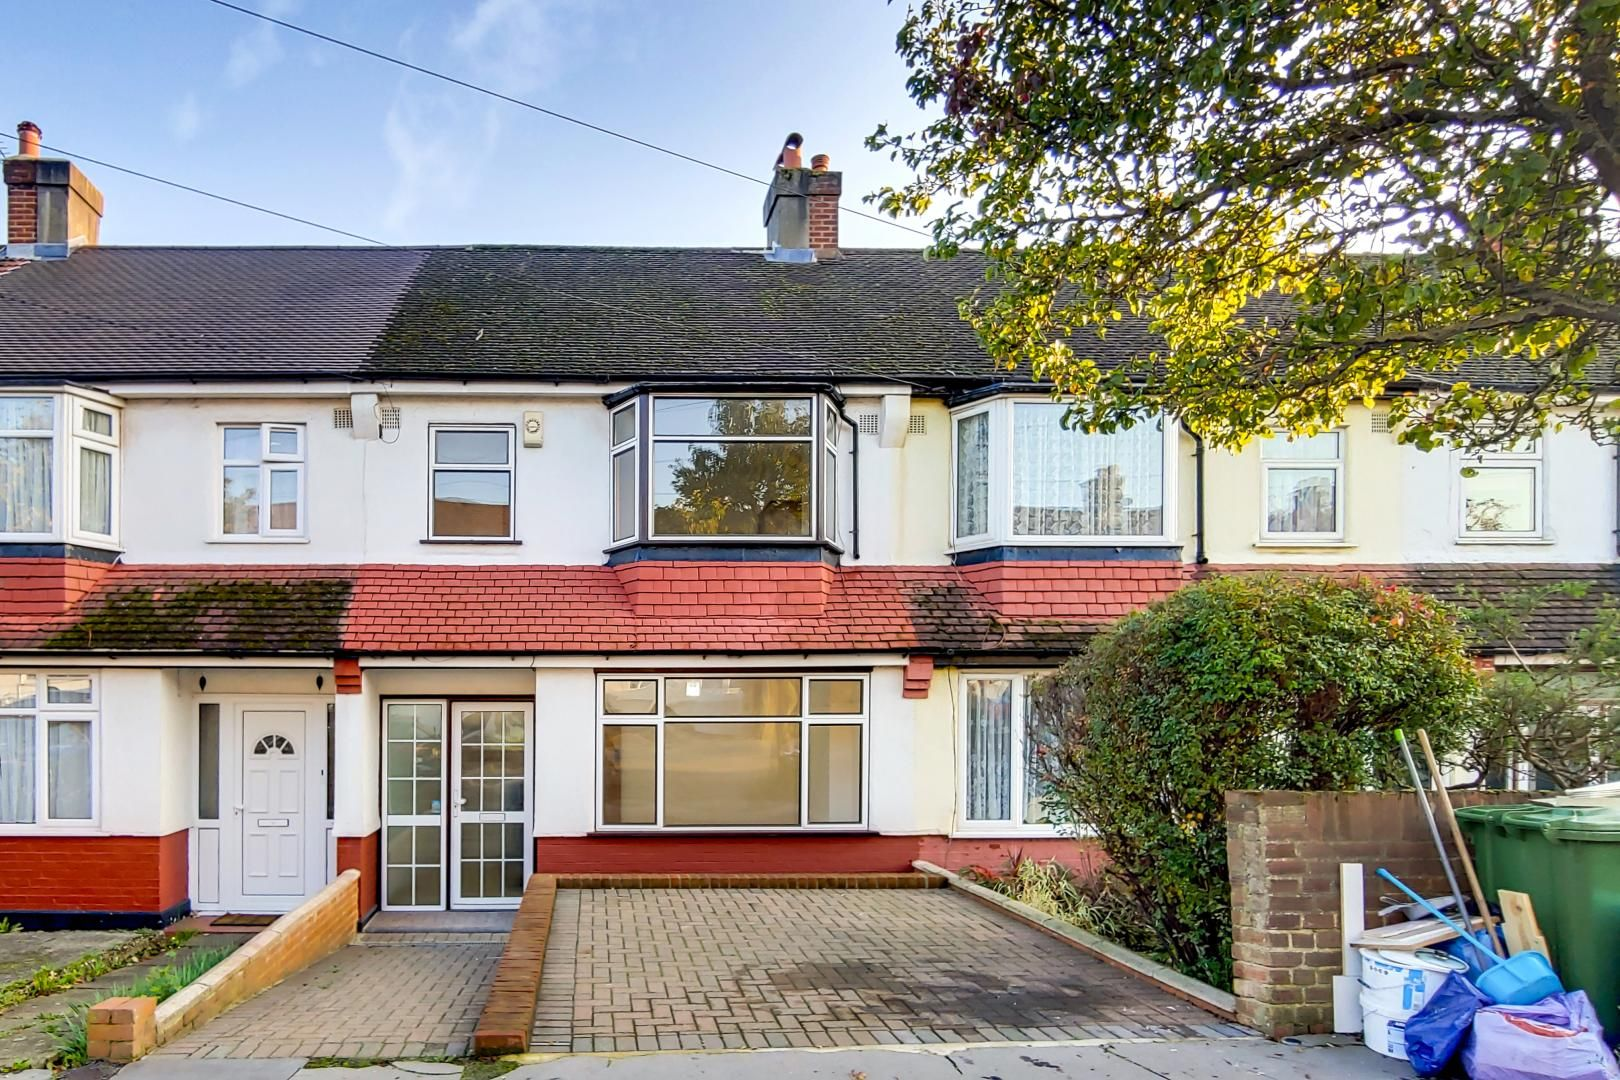 3 bed house to rent in Harrington Road, SE25